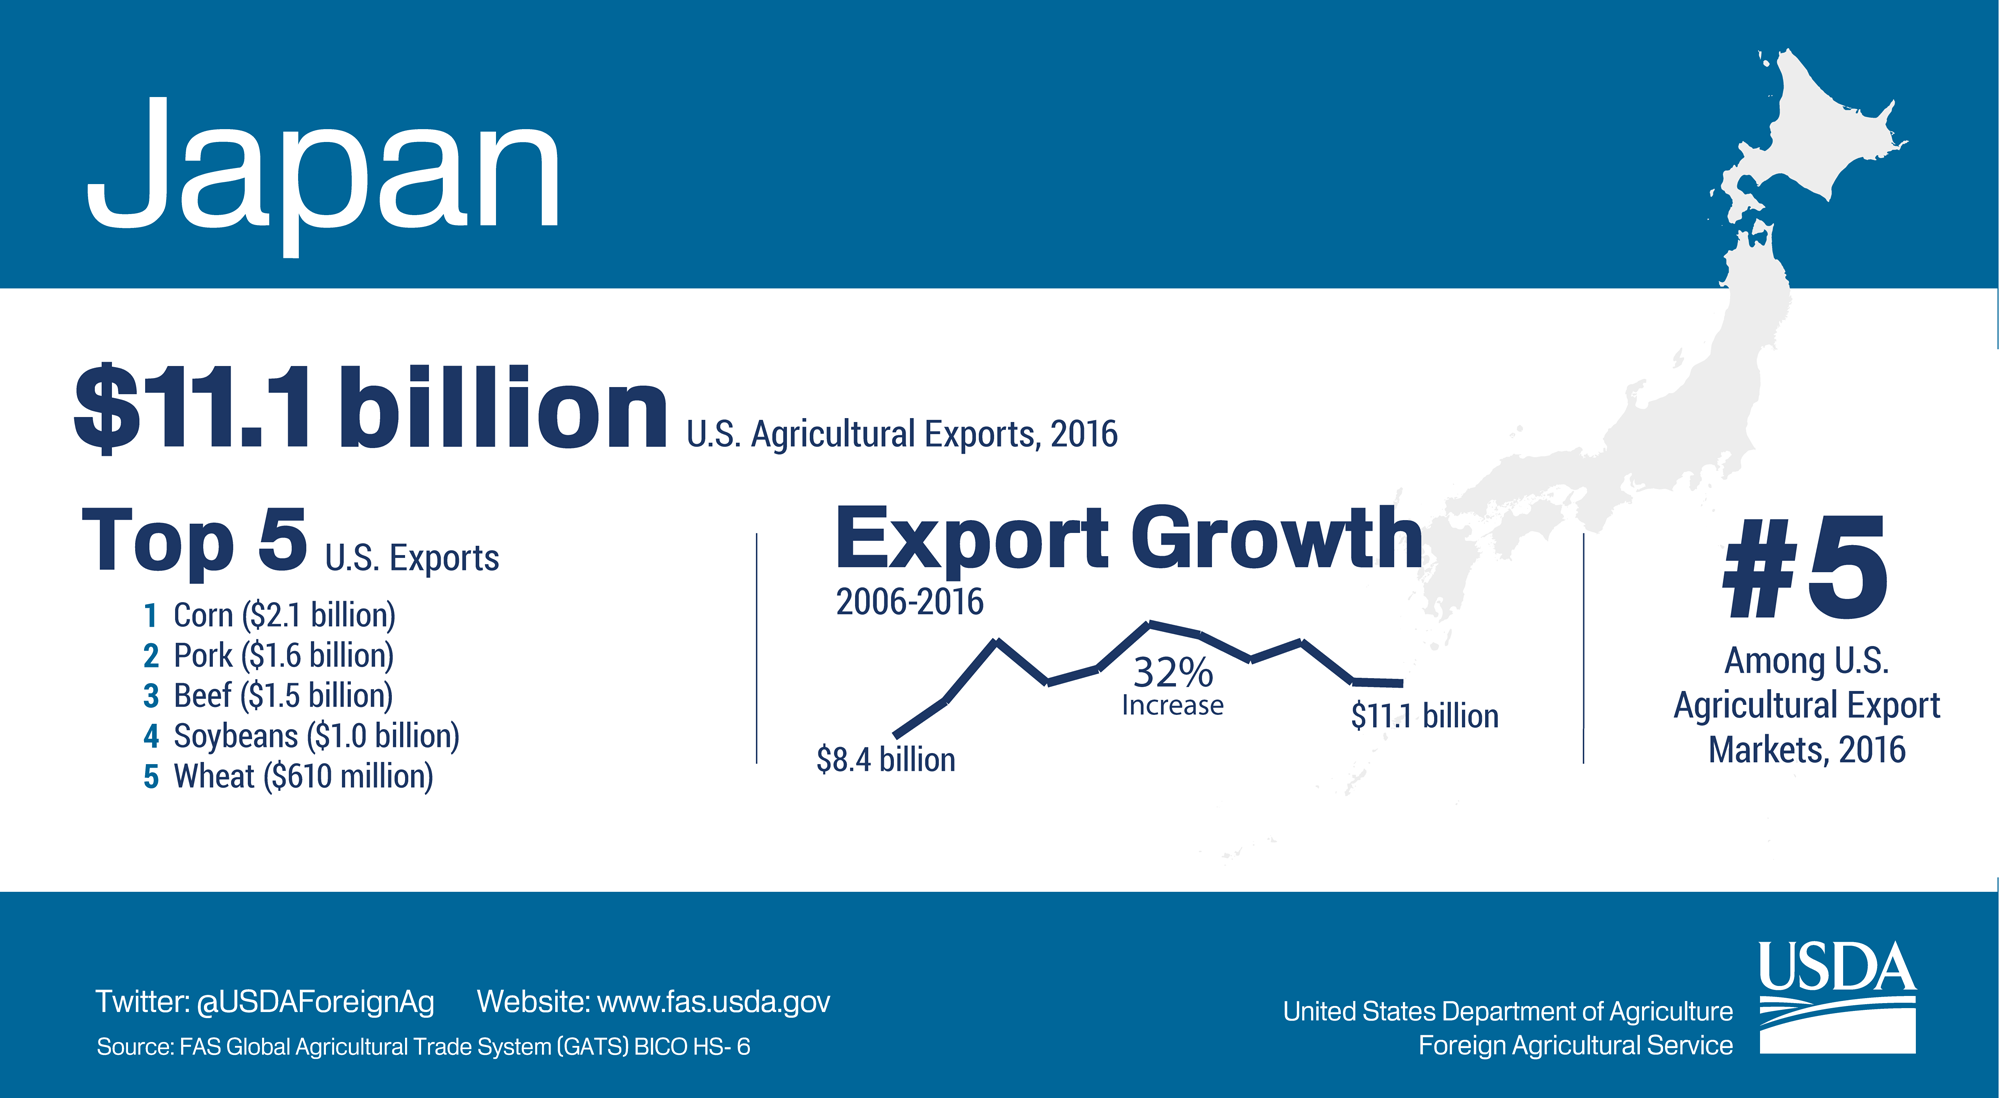 Infographic showing highlights of U.S. agricultural exports to Japan. The U.S. exported $11.1 billion in agriculture to Japan in 2016.